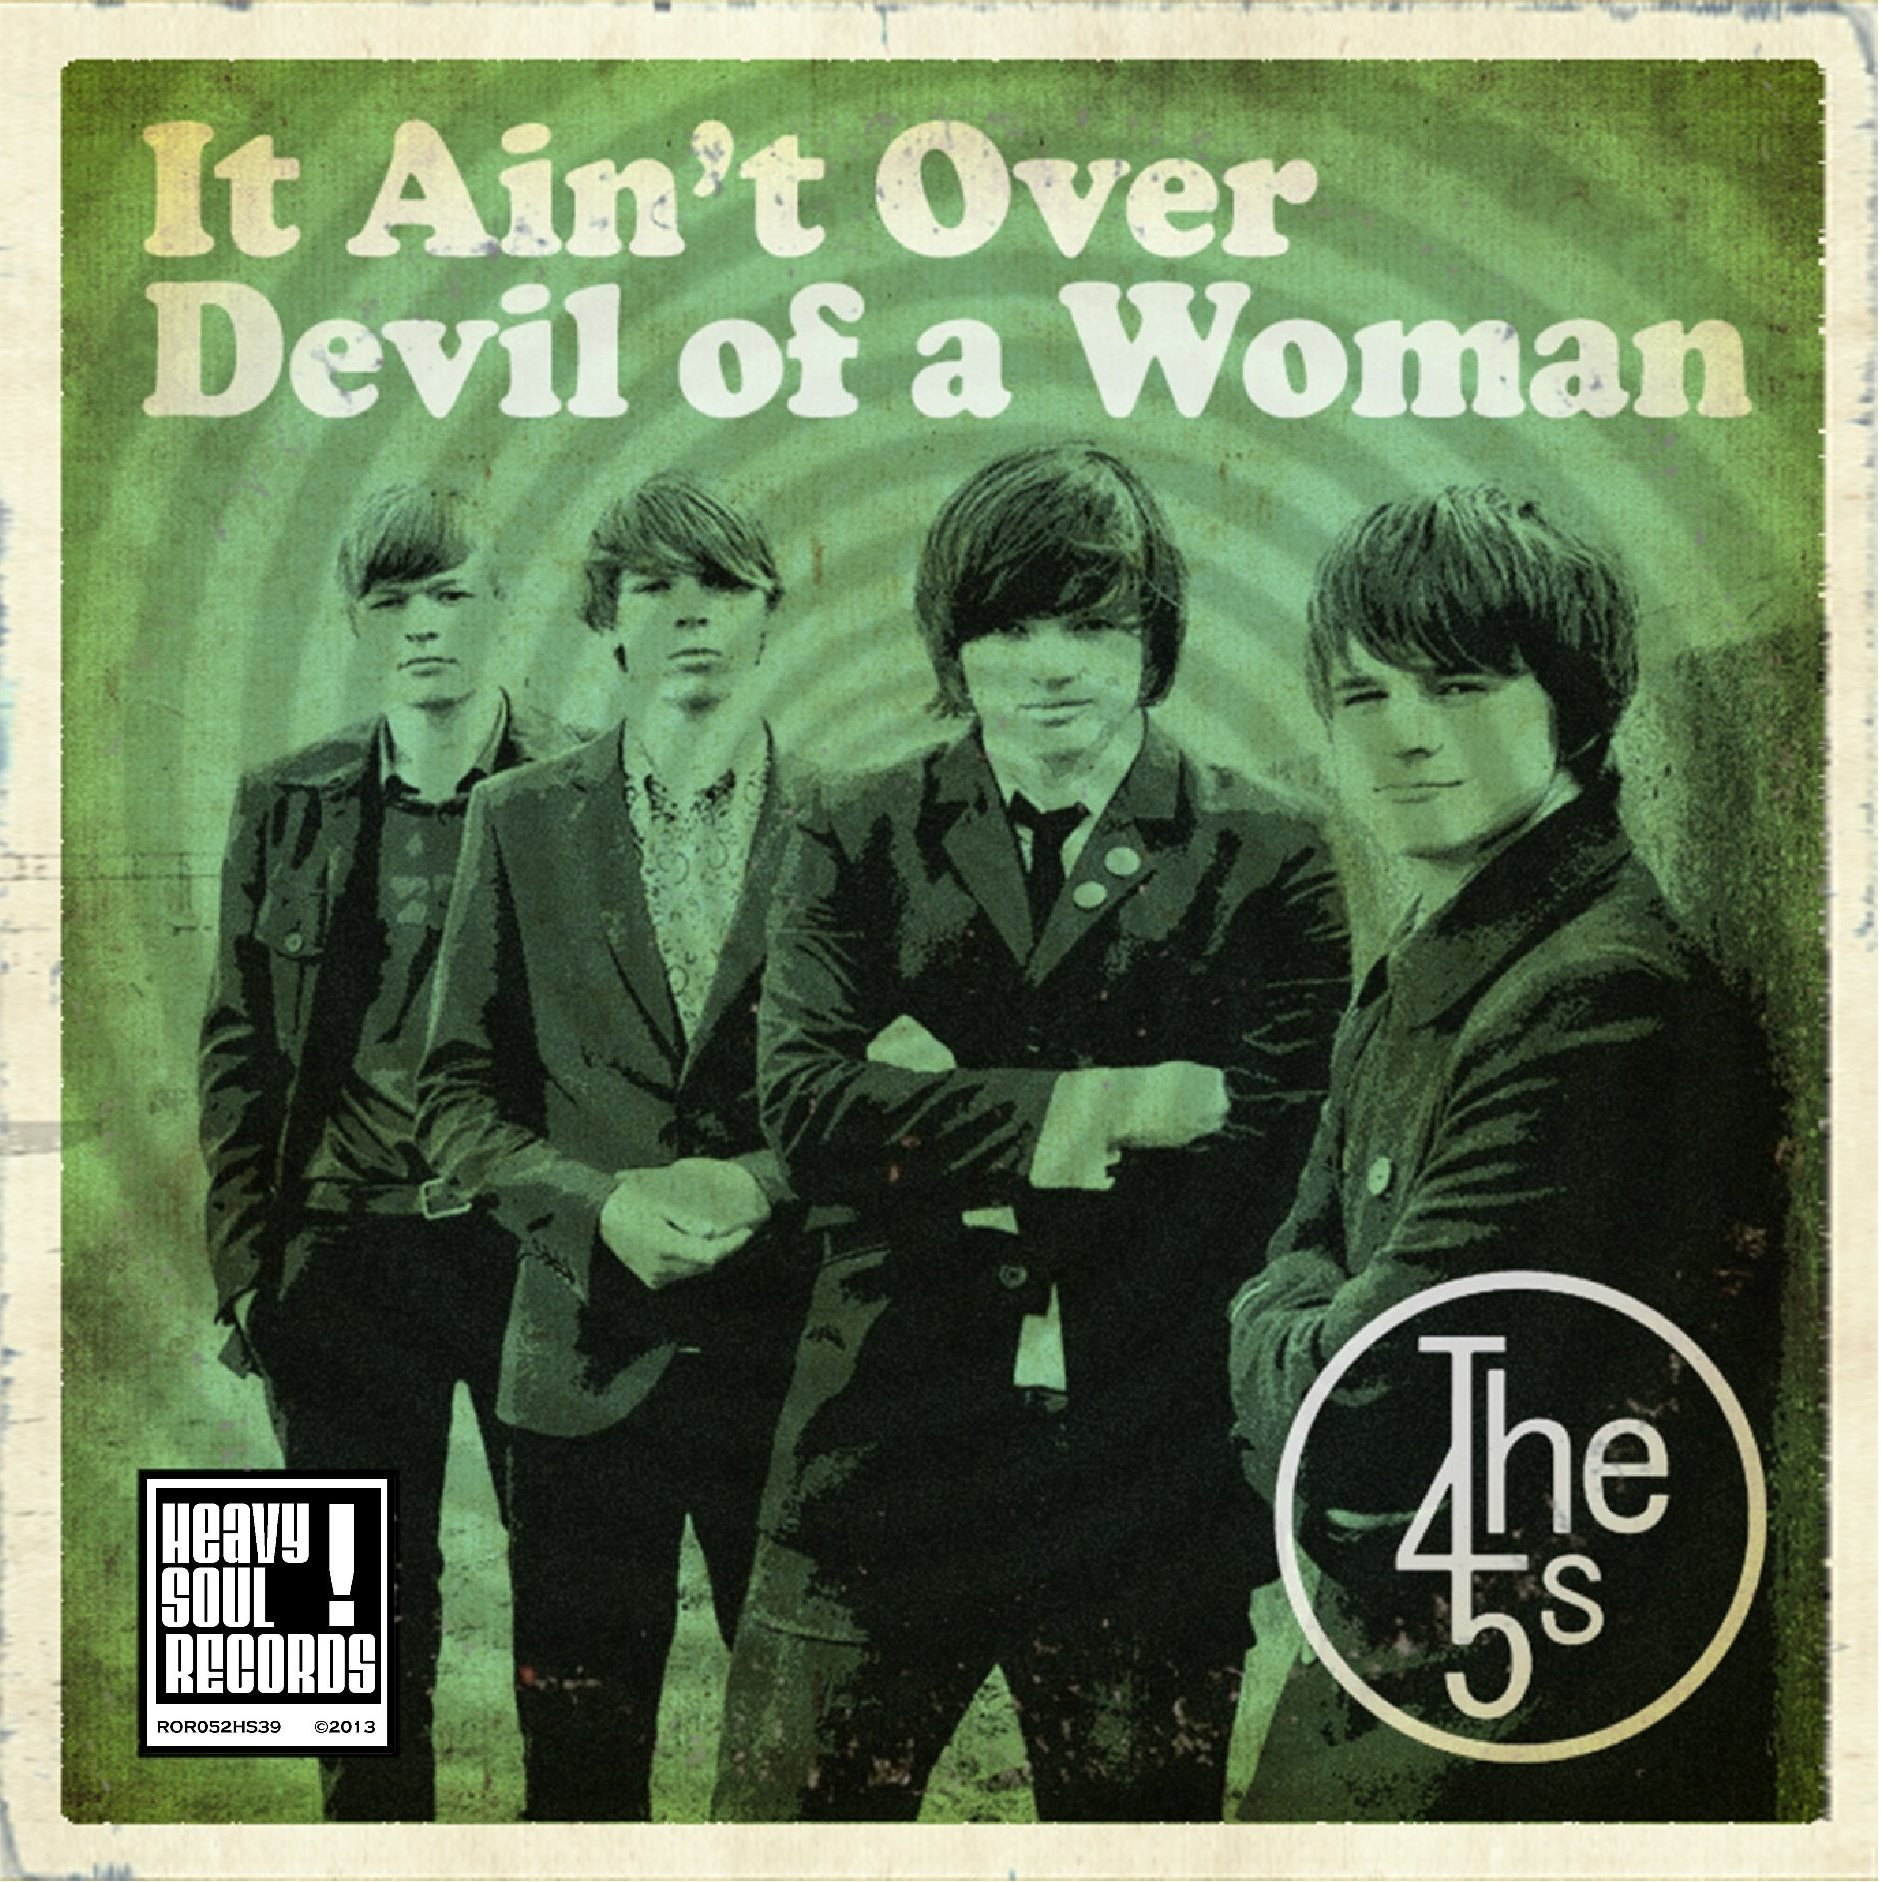 THE 45s Devil Of A Woman 7